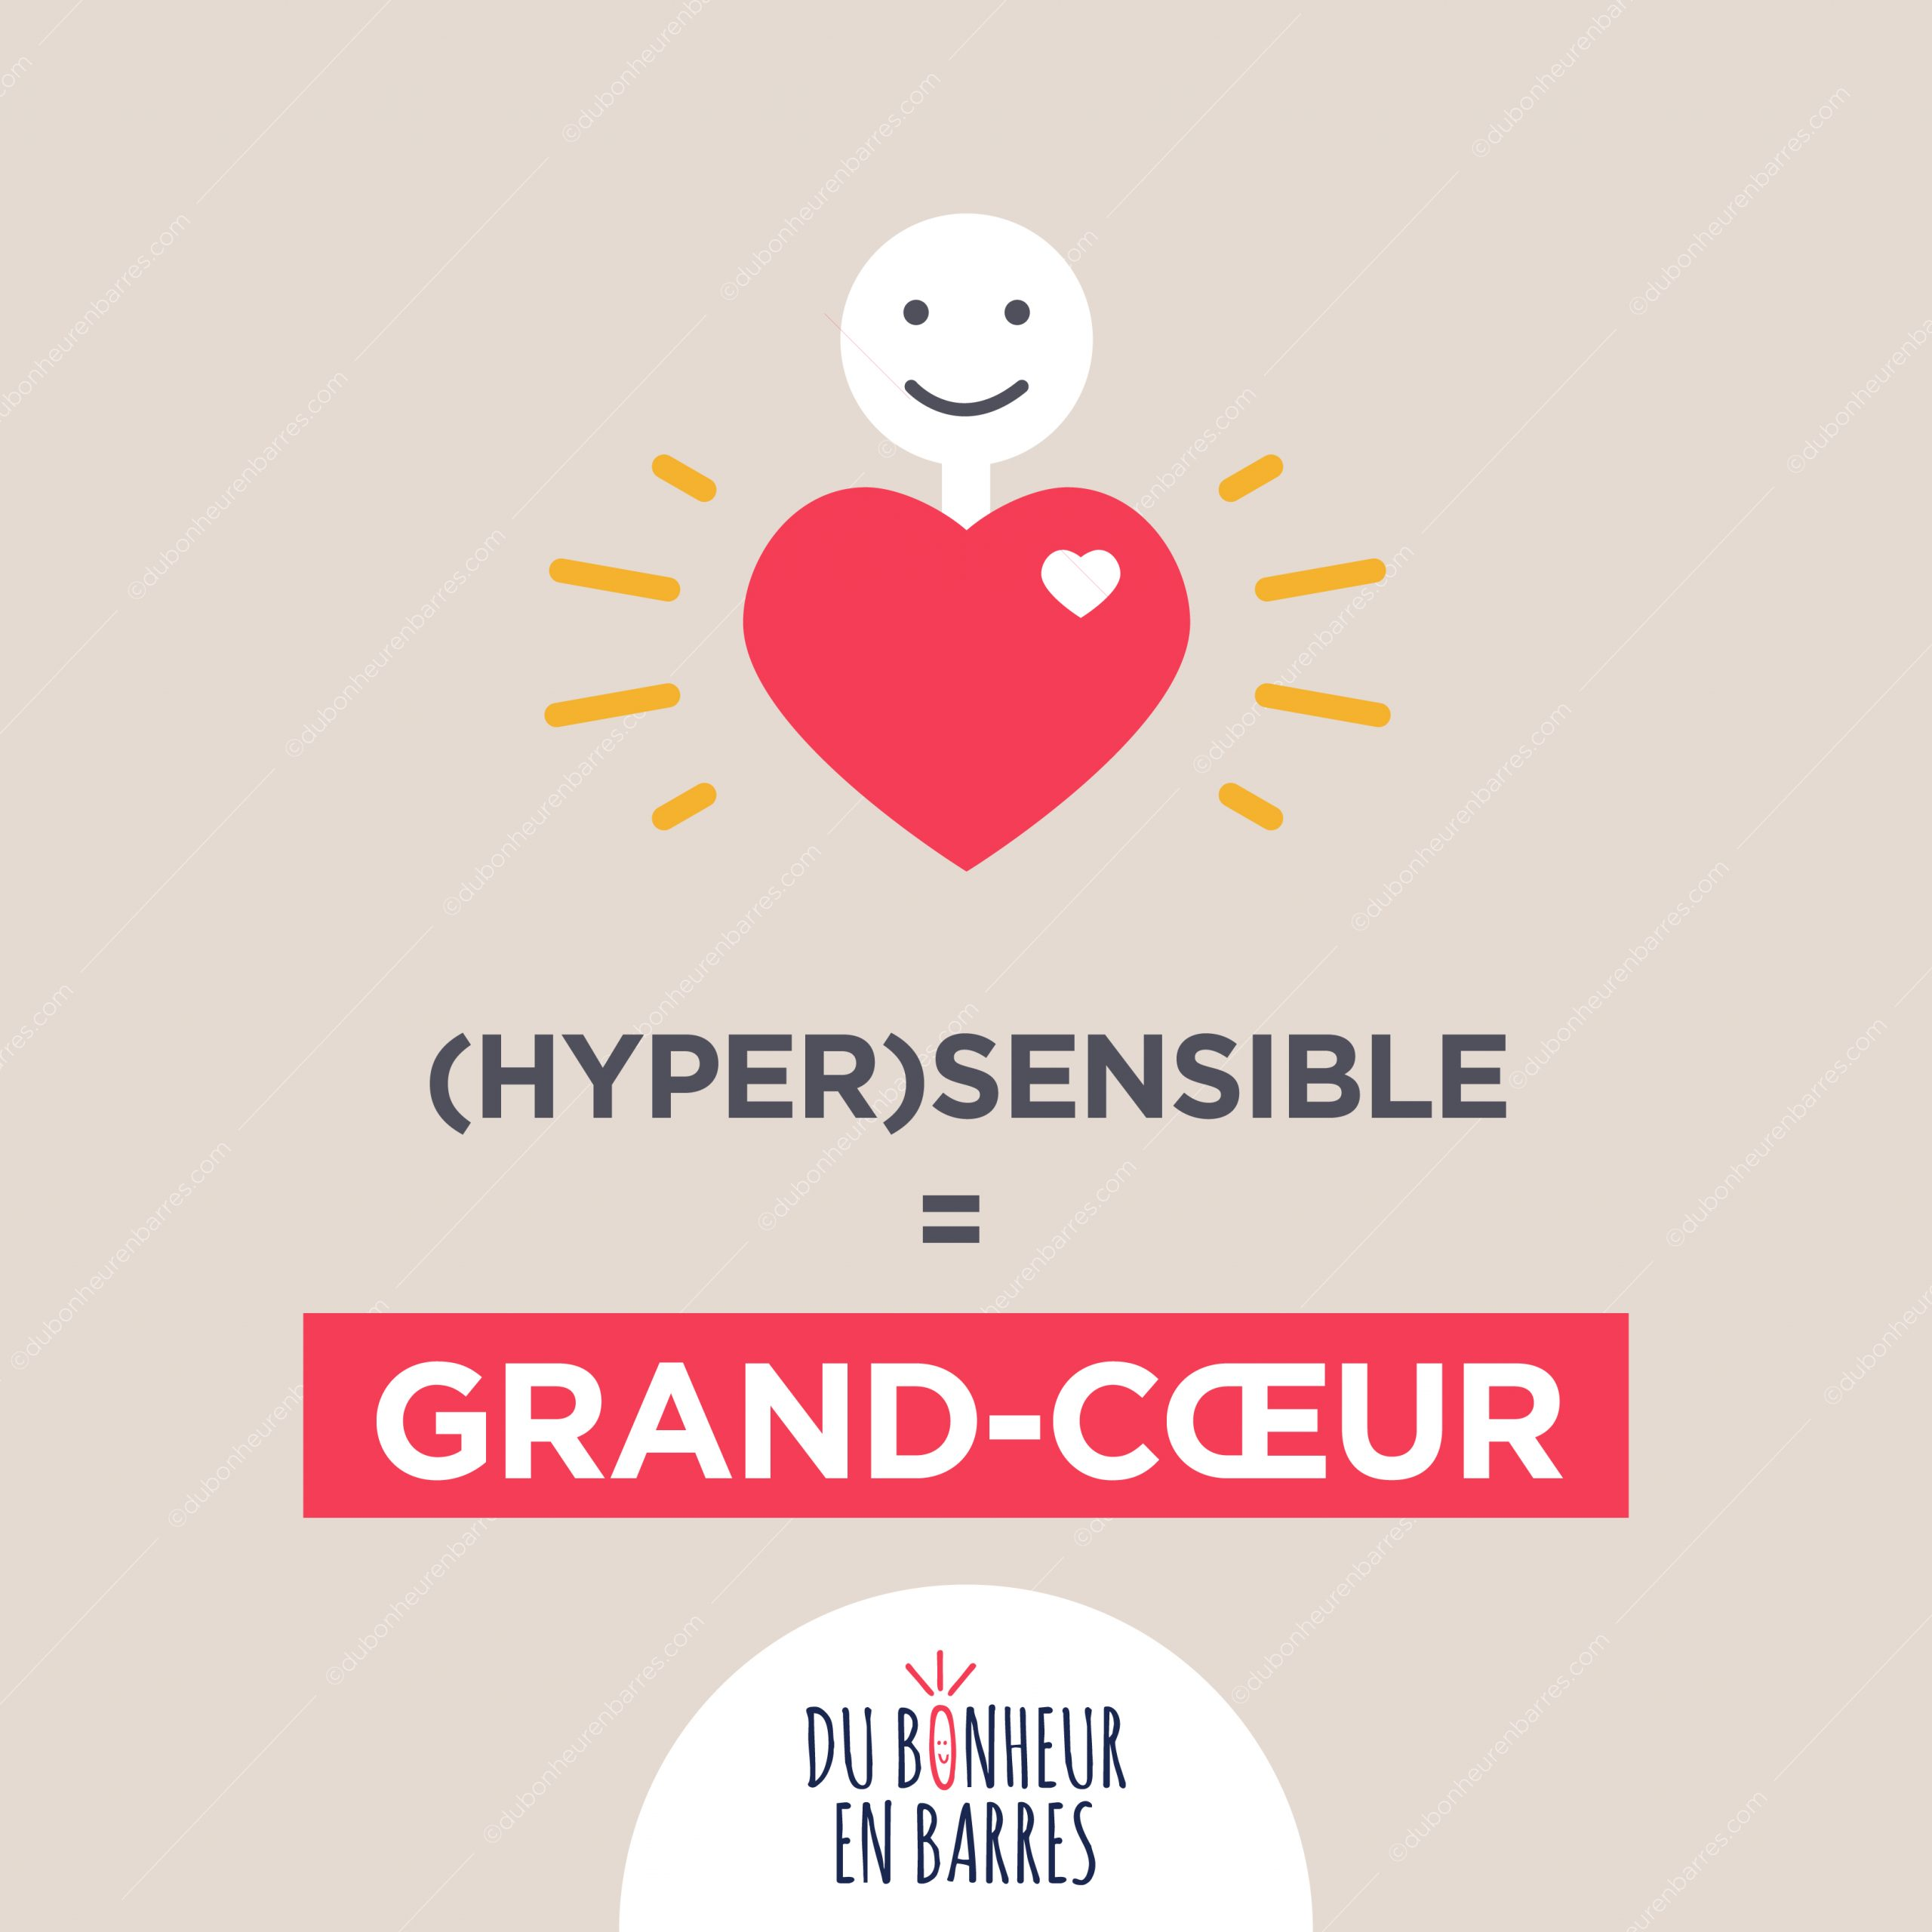 Hypersensible = grand-coeur